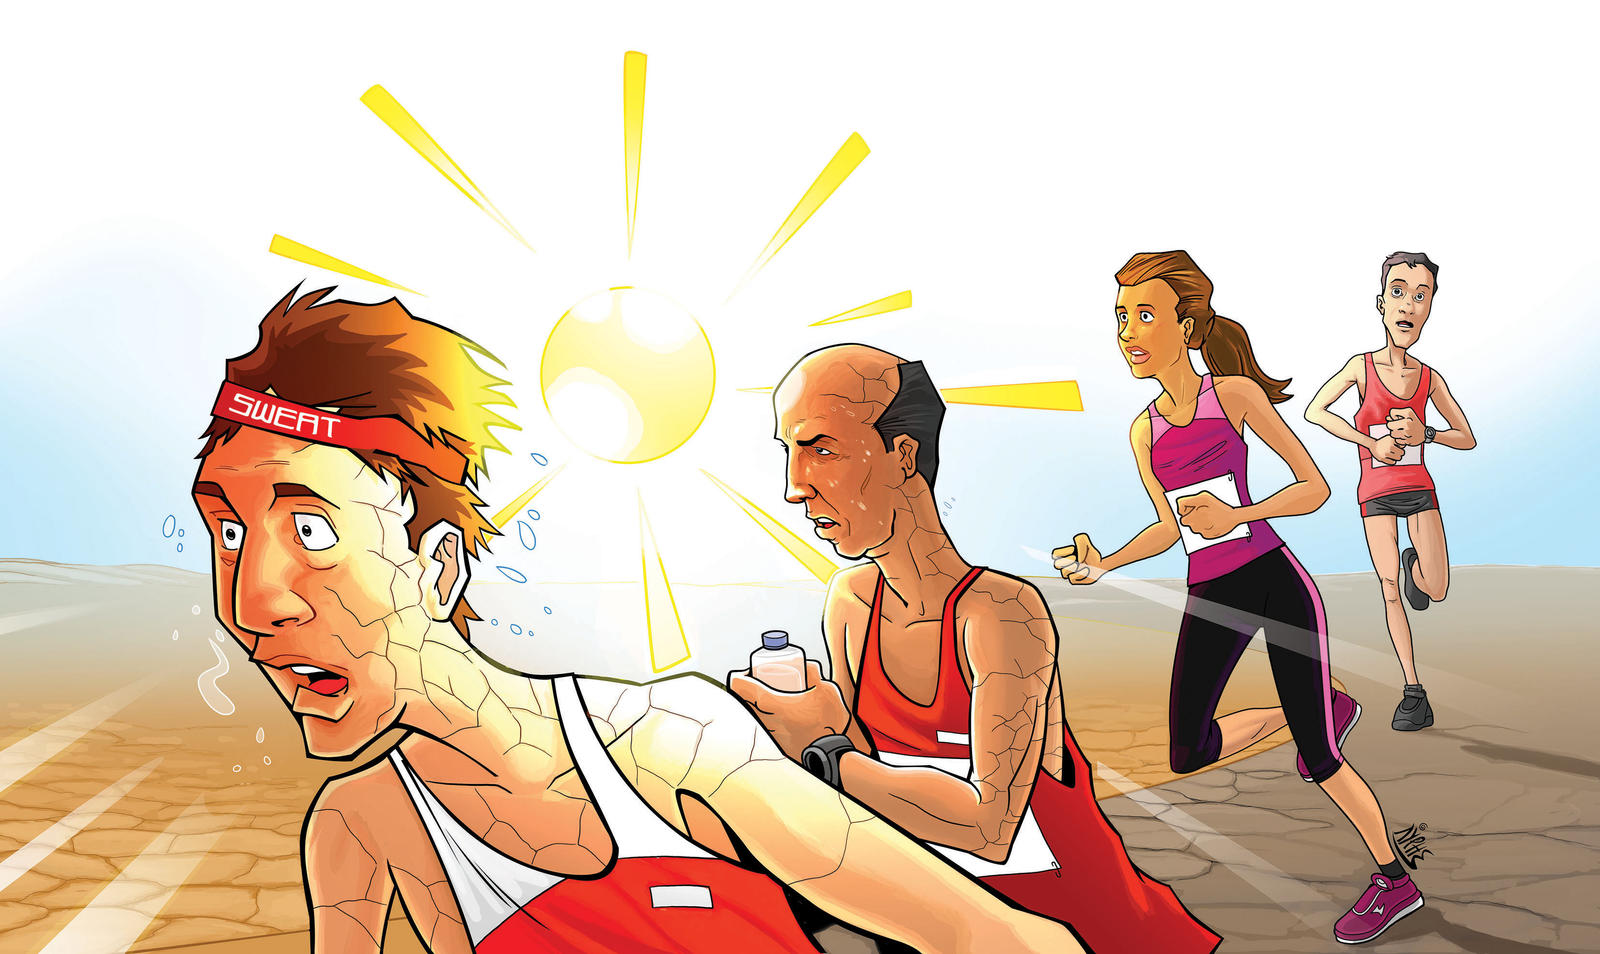 Runners In Extreme Weather Conditions illustration by markador